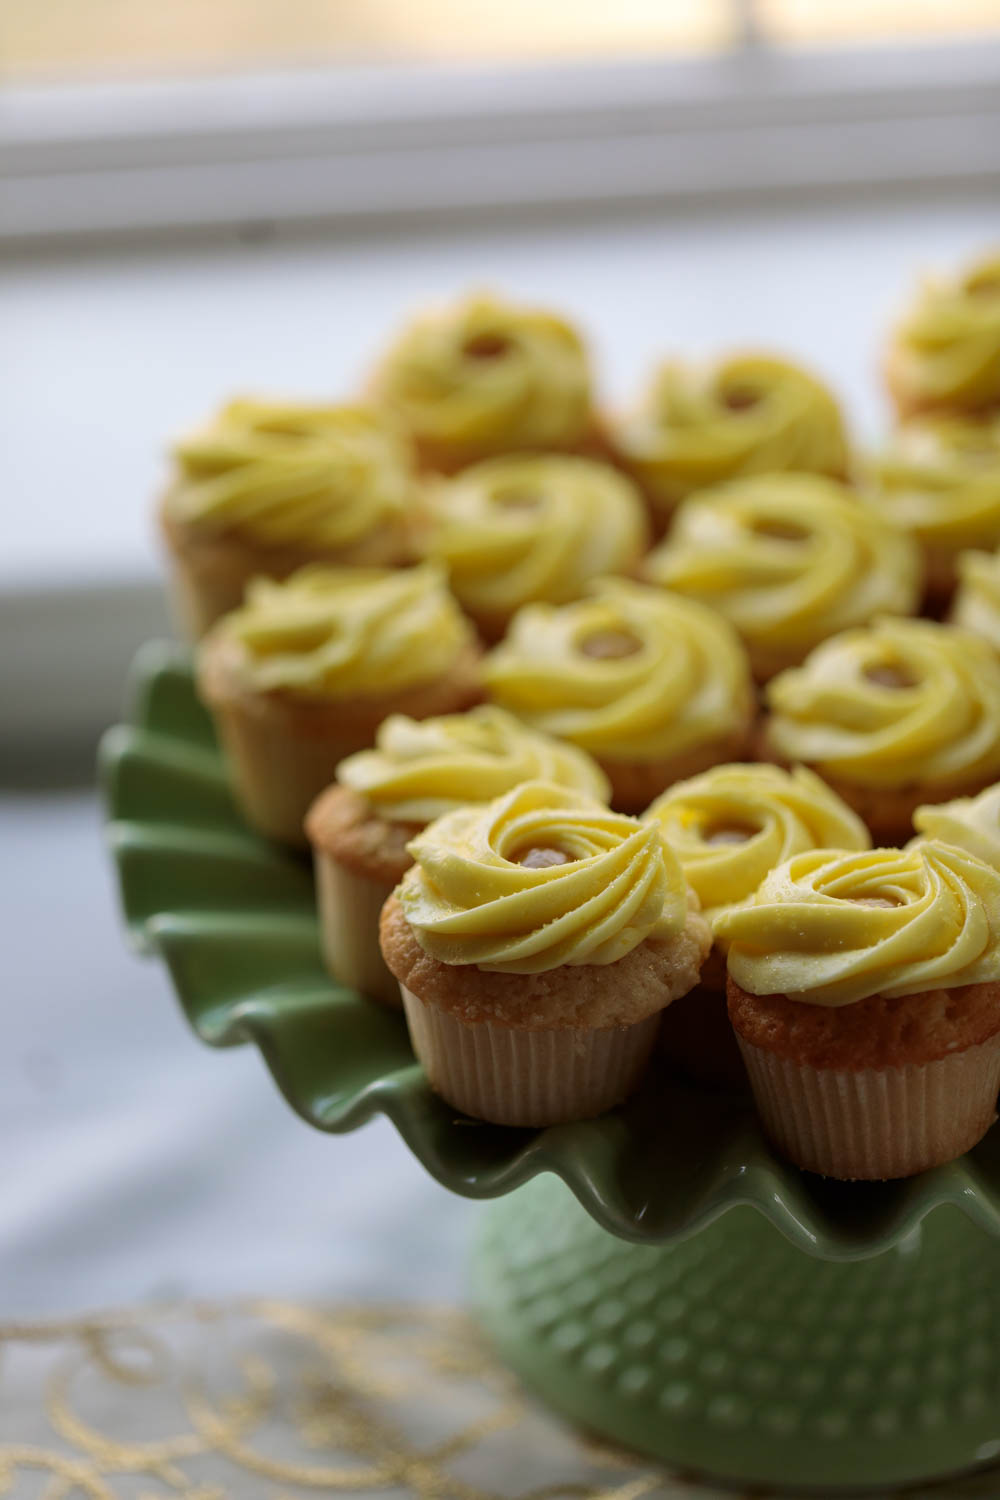 Lemon curd cupcakes from Chocolate